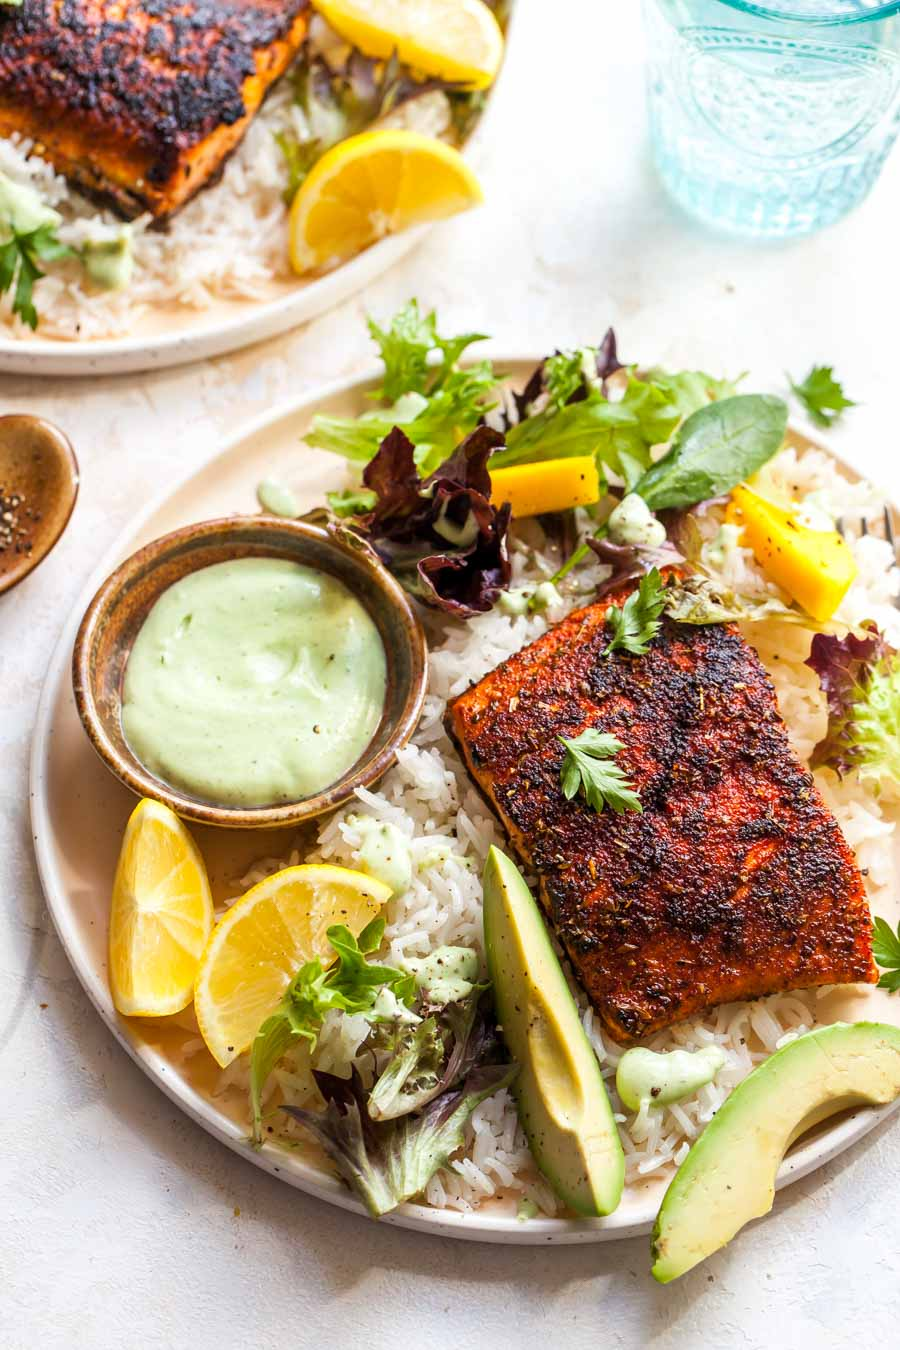 Blackened Salmon with Coconut Rice and Avocado Ranch